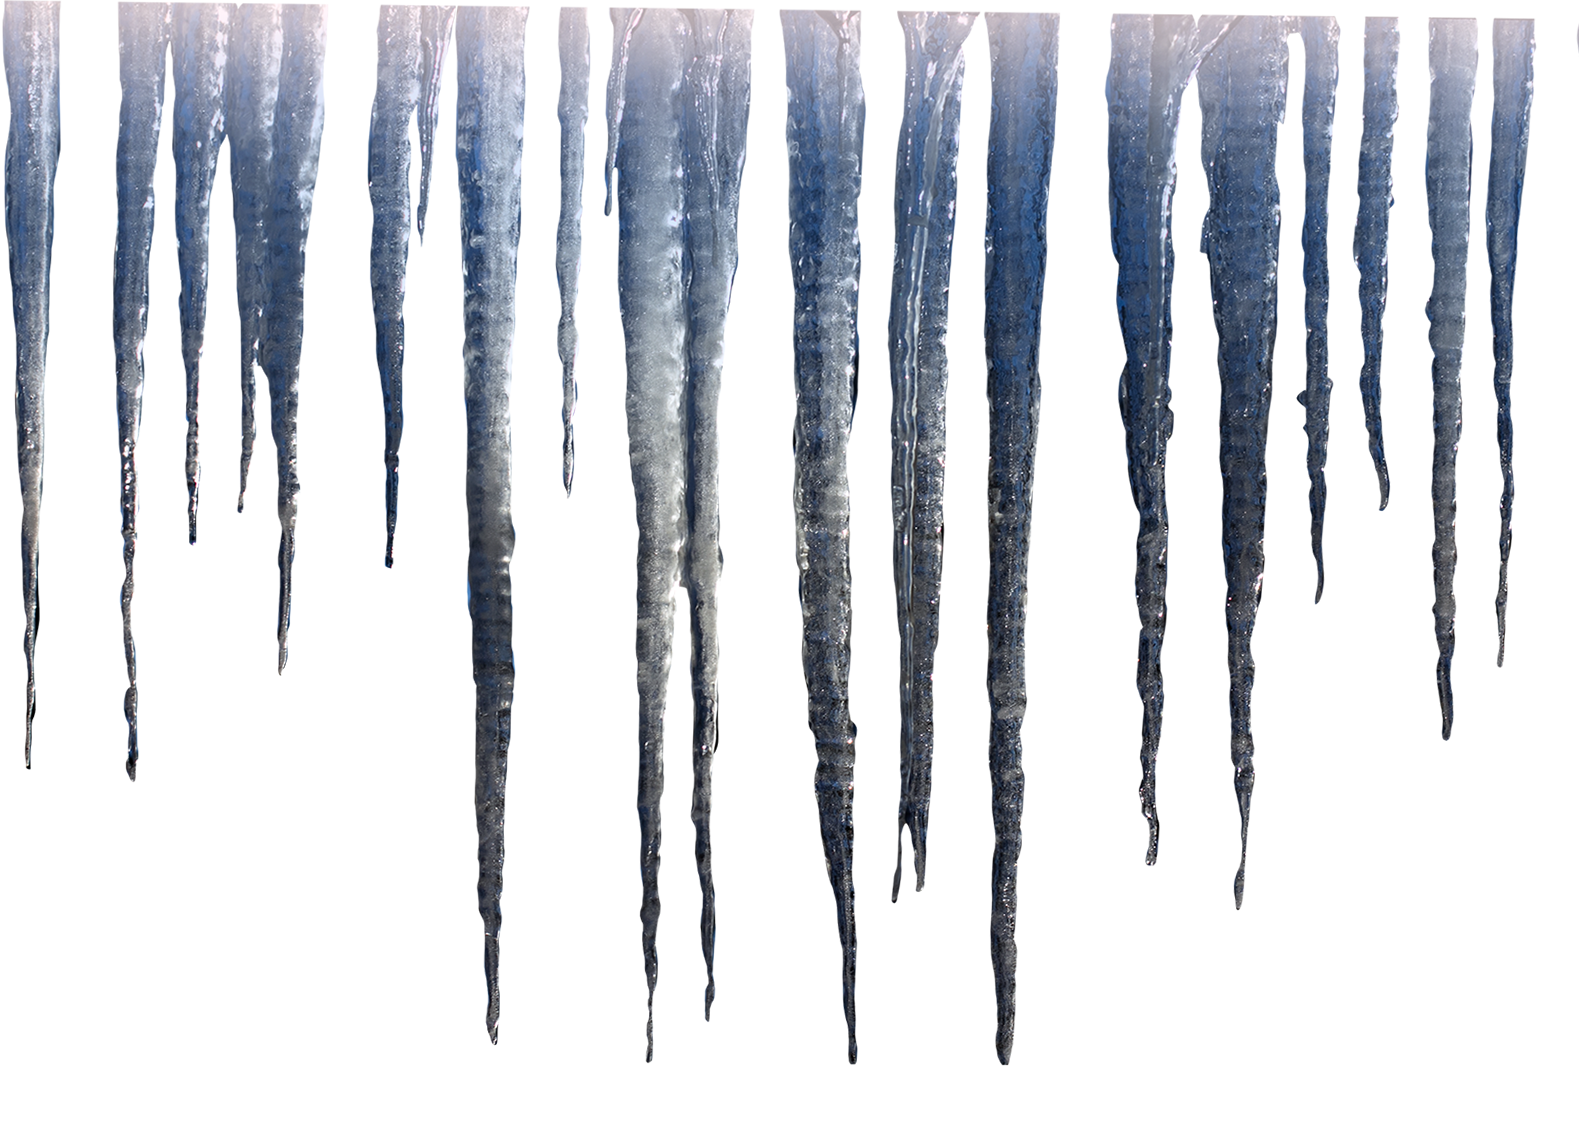 banner royalty free stock Photoshop digital art create. Icicle drawing realistic